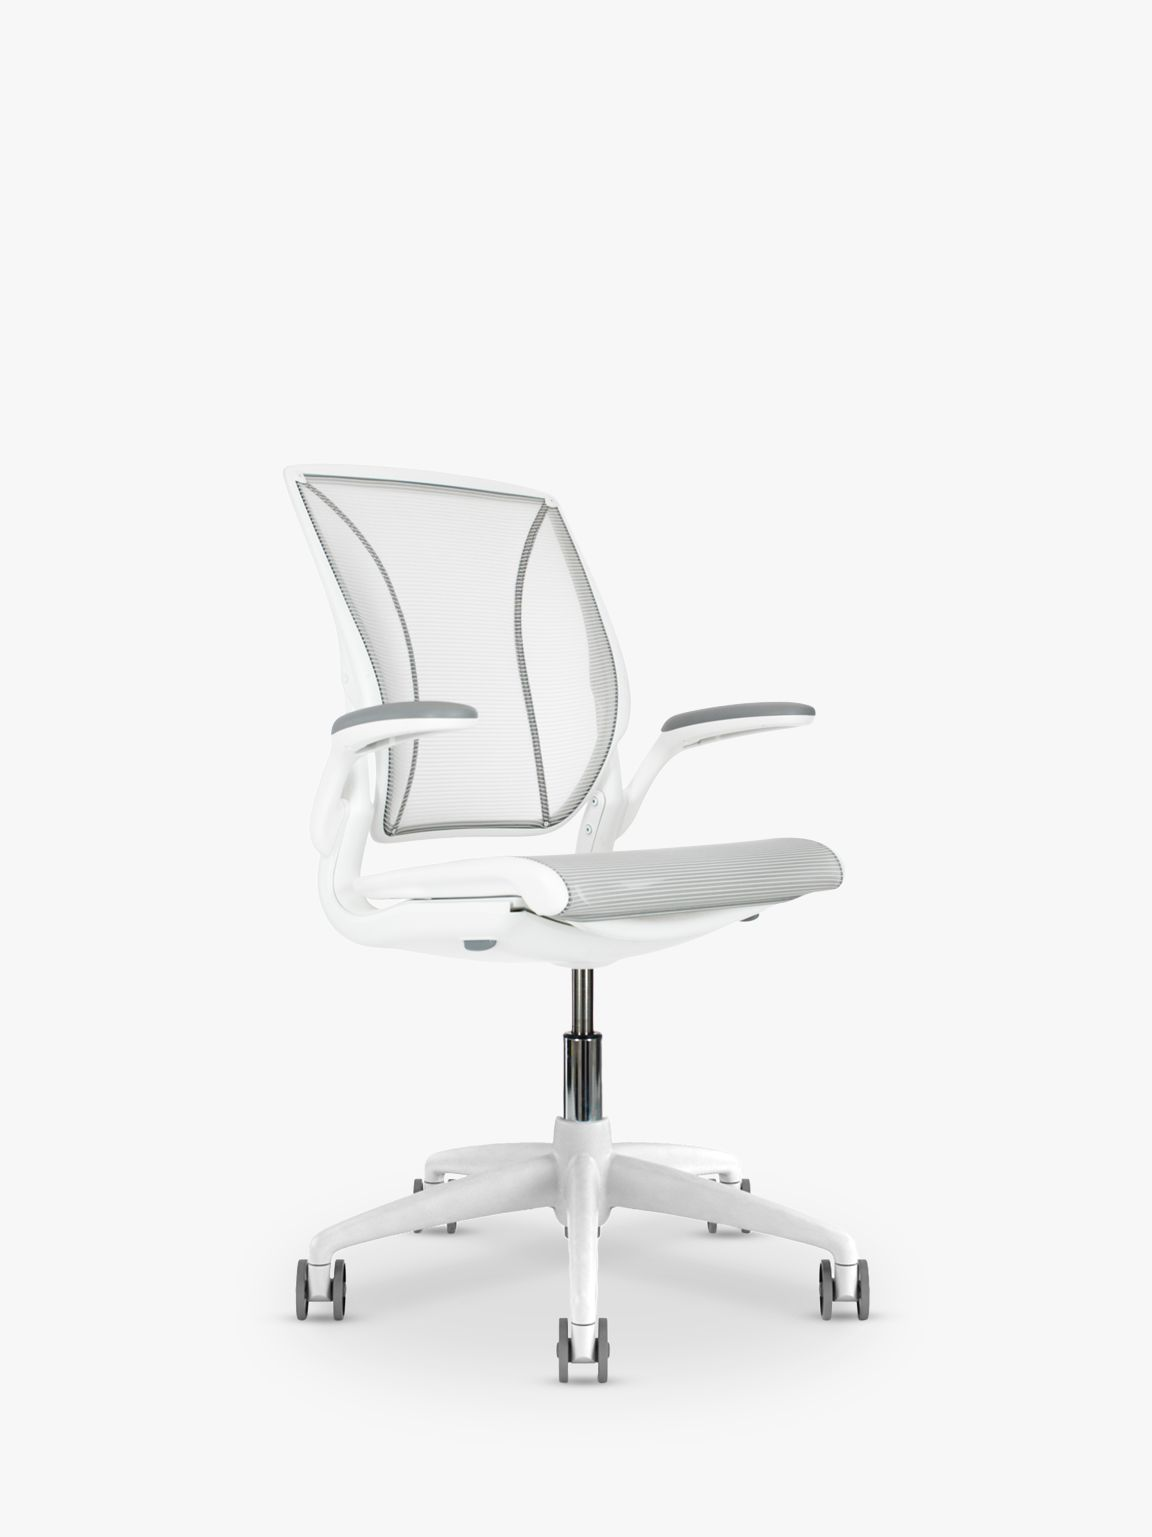 different world chair ikea futon single bed humanscale diffrient office white at john lewis